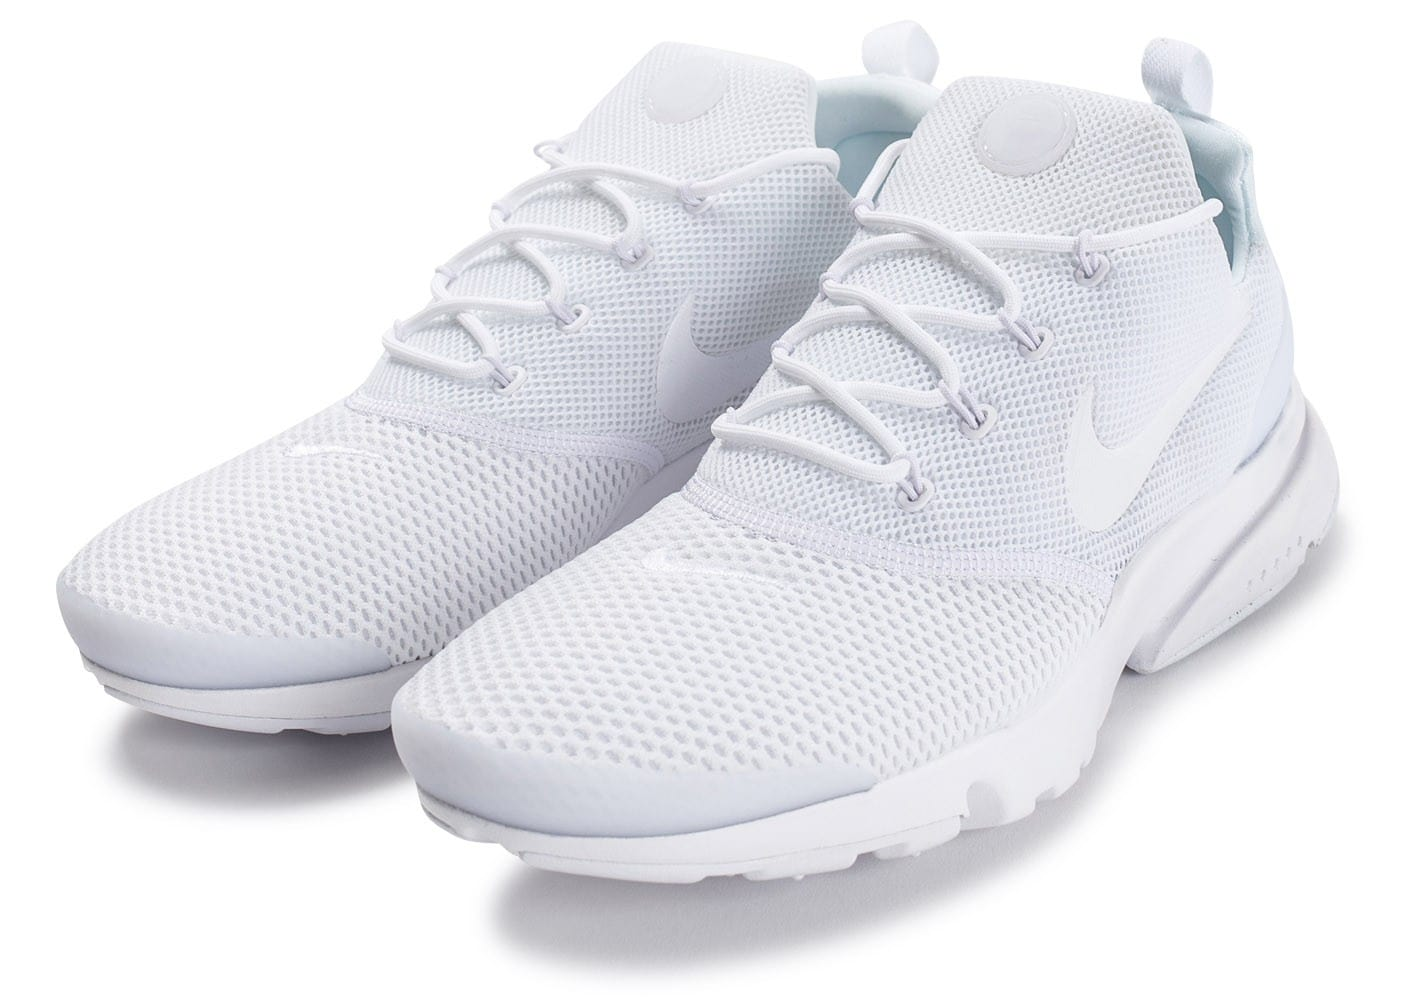 Homme Nike Fly Presto Presto Homme Nike Fly Chaussures wO8nvmN0